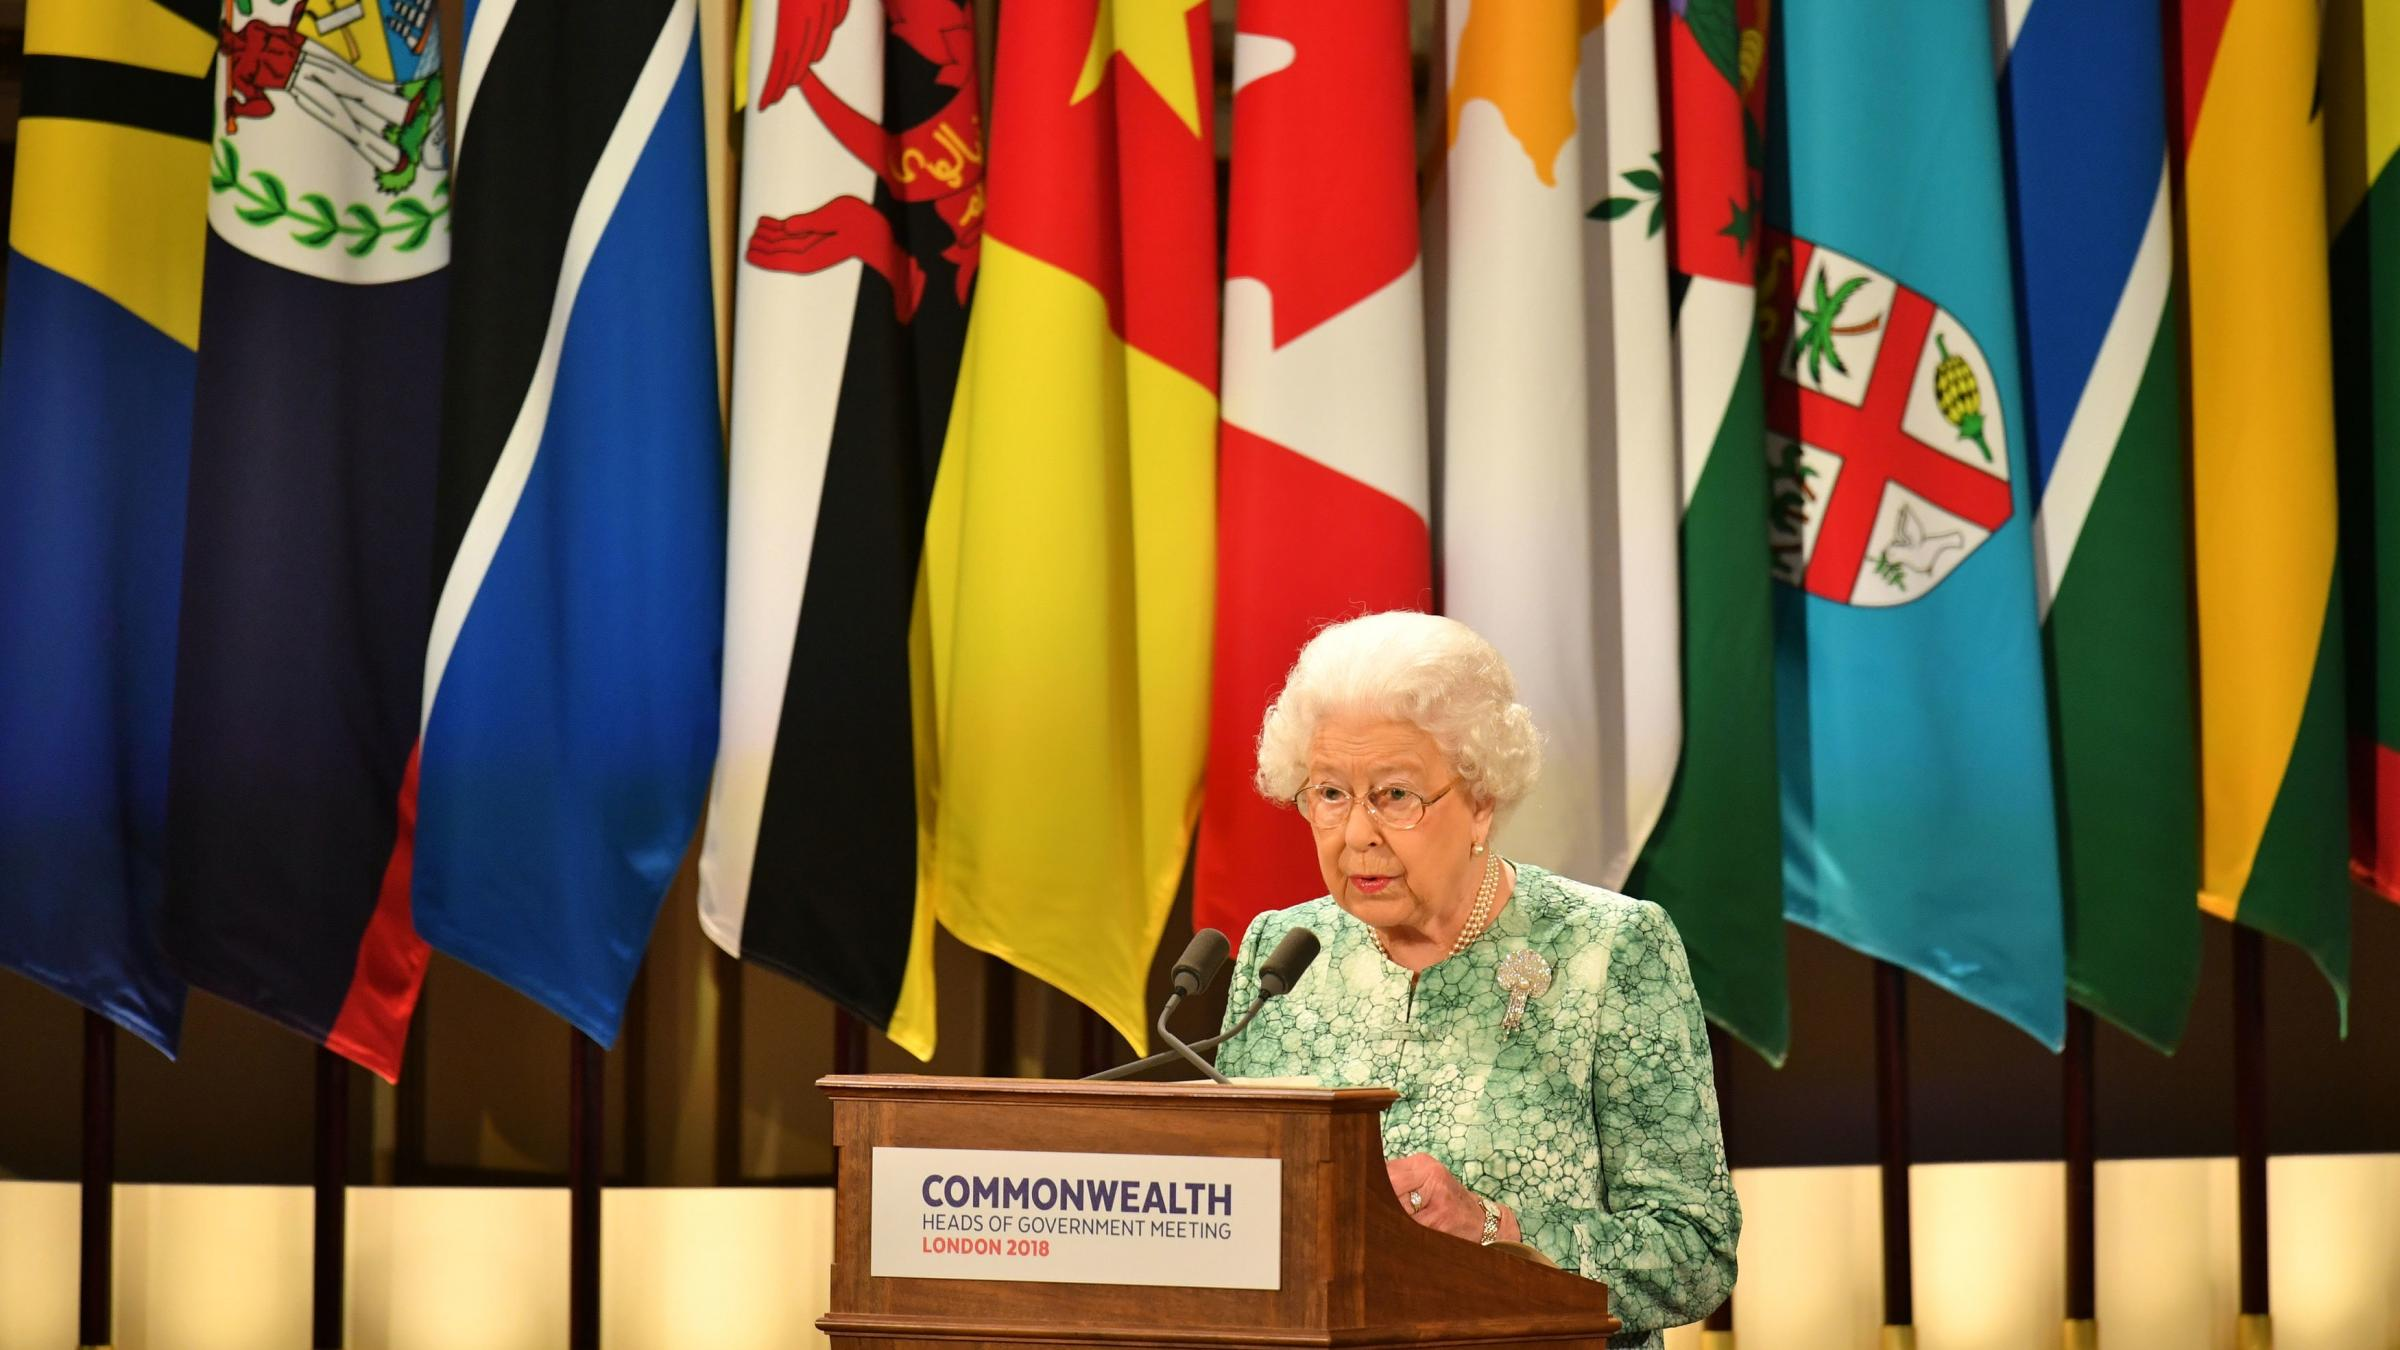 Queen endorses Charles to take over as Commonwealth head